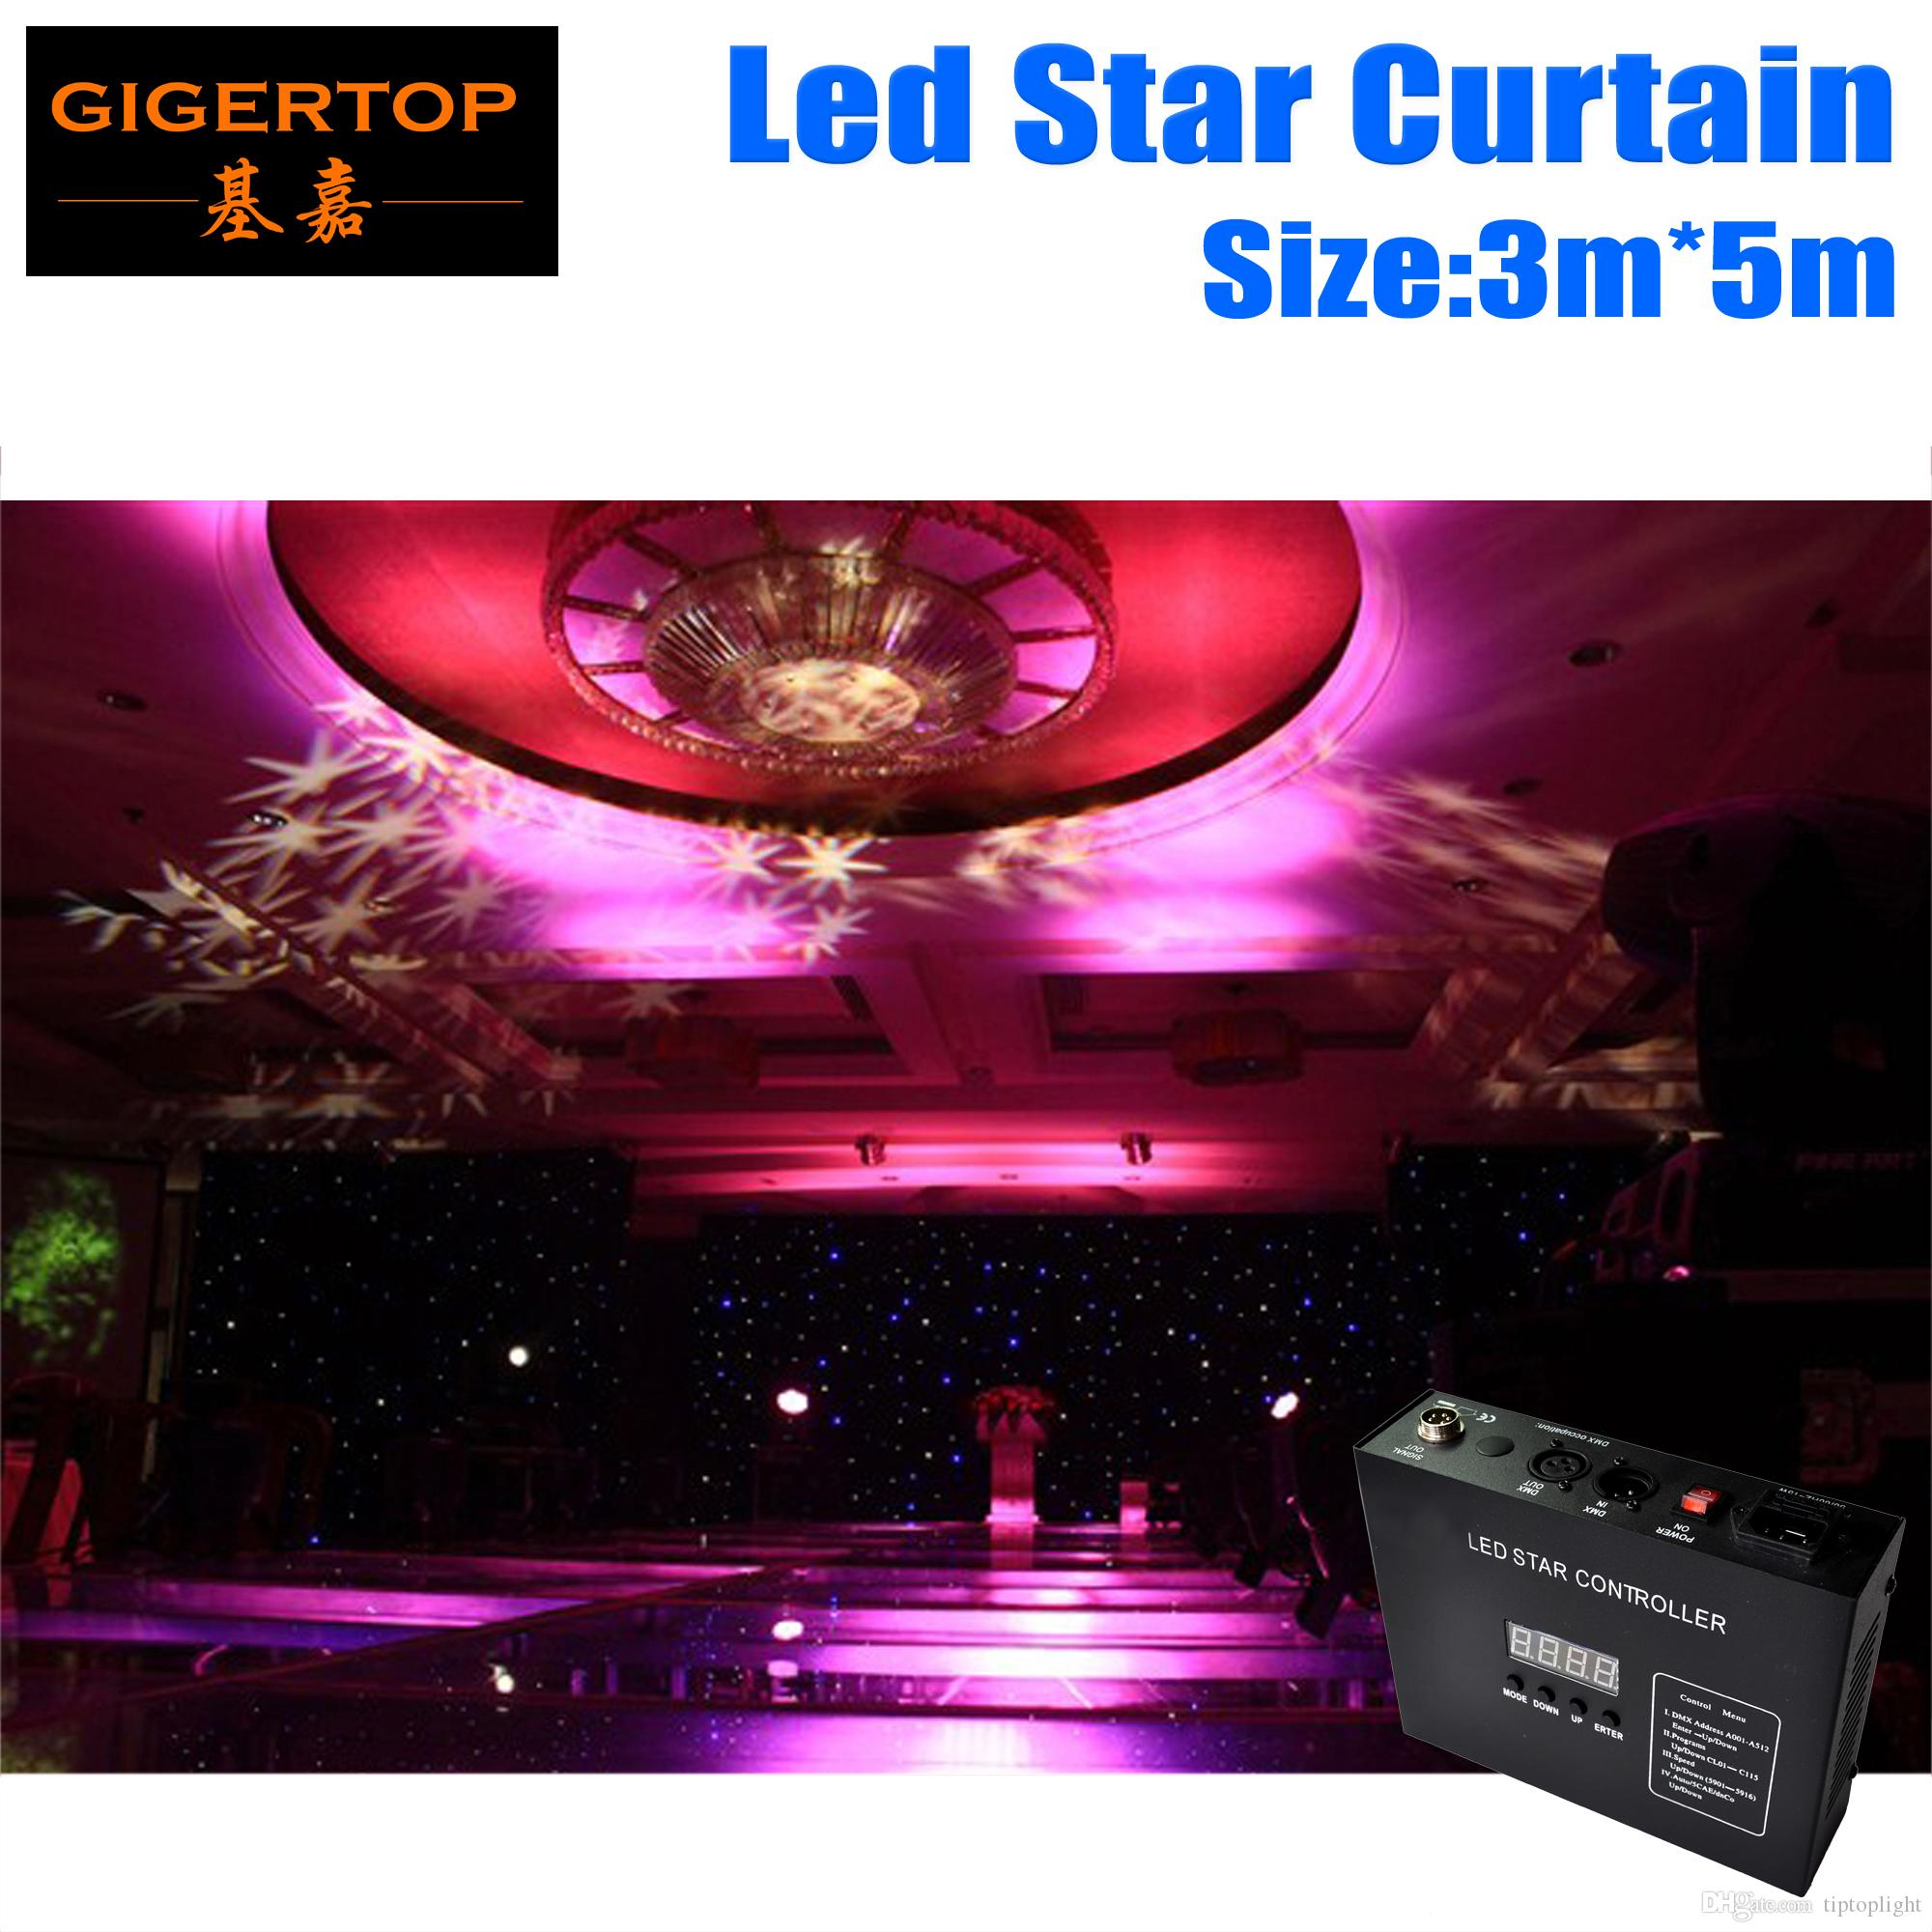 Freeshipping 3M*5M Led Star Curtain For Led Stage Background Fireproof Curtain velvet Materials RGBW Color 50mm Led Star Cloth+controller